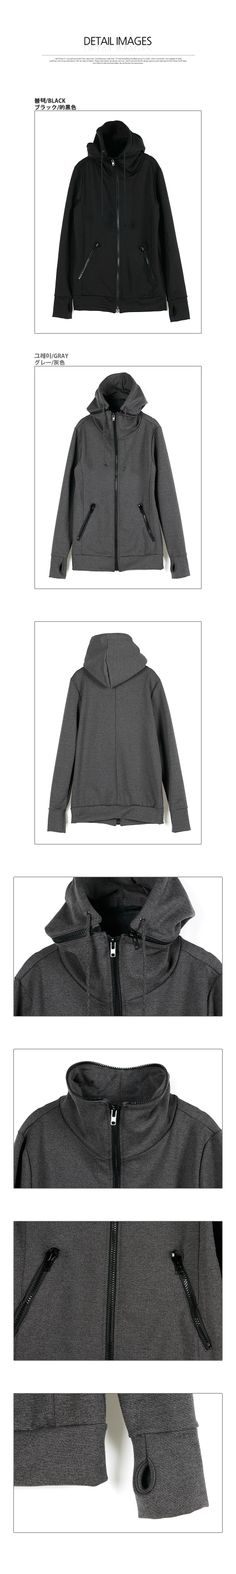 Hooded Zip-Up Jacket - Rememberclick Hoods, Zip Ups, Black Jeans, Clothing, Pants, Jackets, Stuff To Buy, Fashion, Outfit